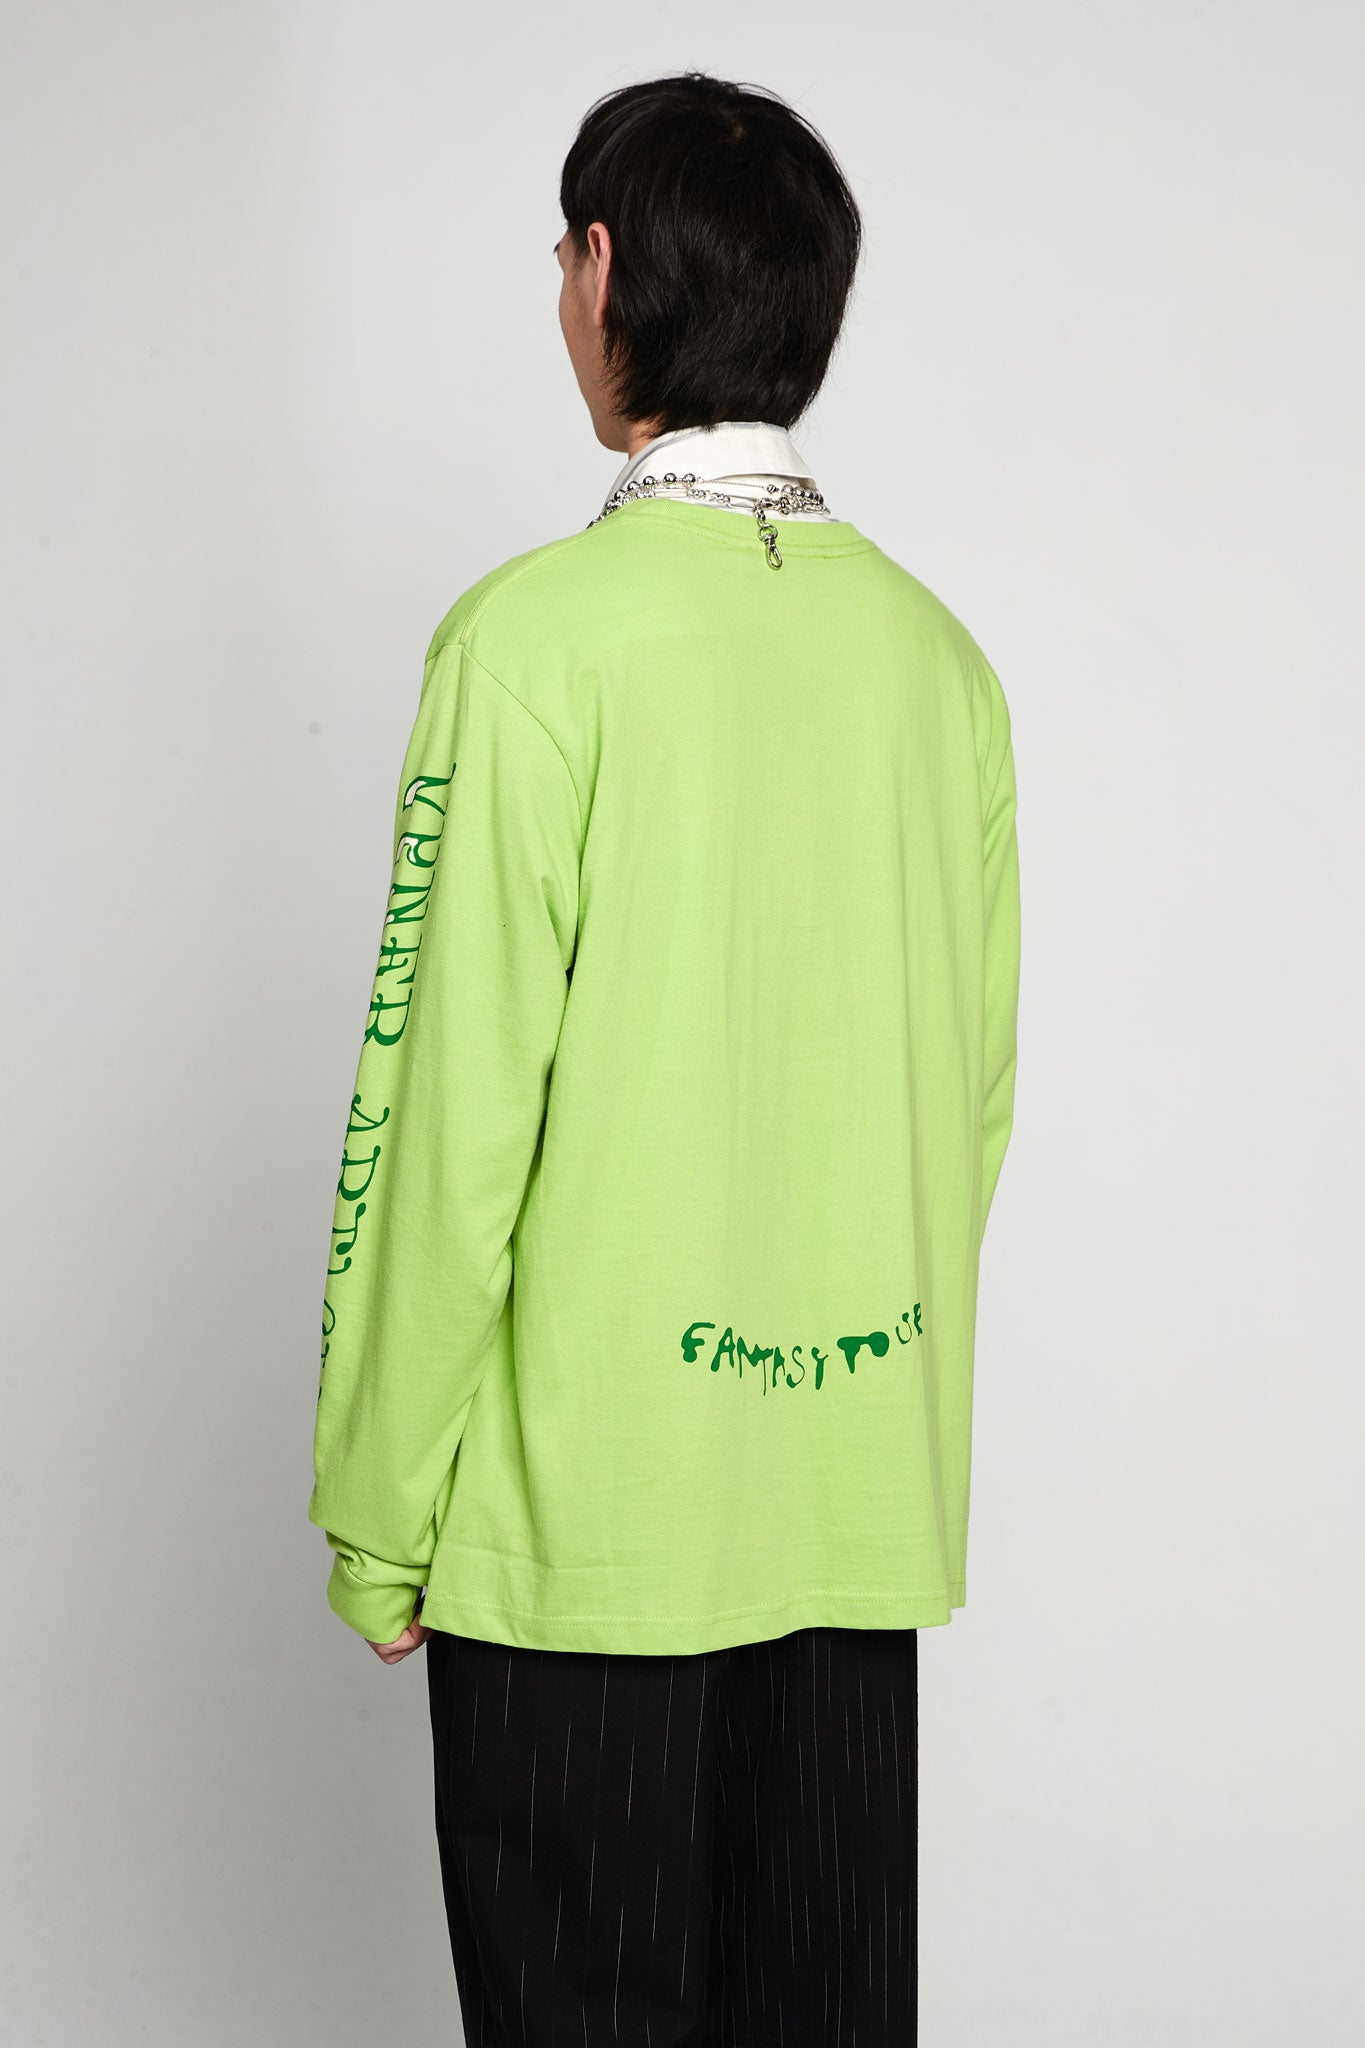 Fantasy Tour Print Long Sleeves T-shirt Jersey Green